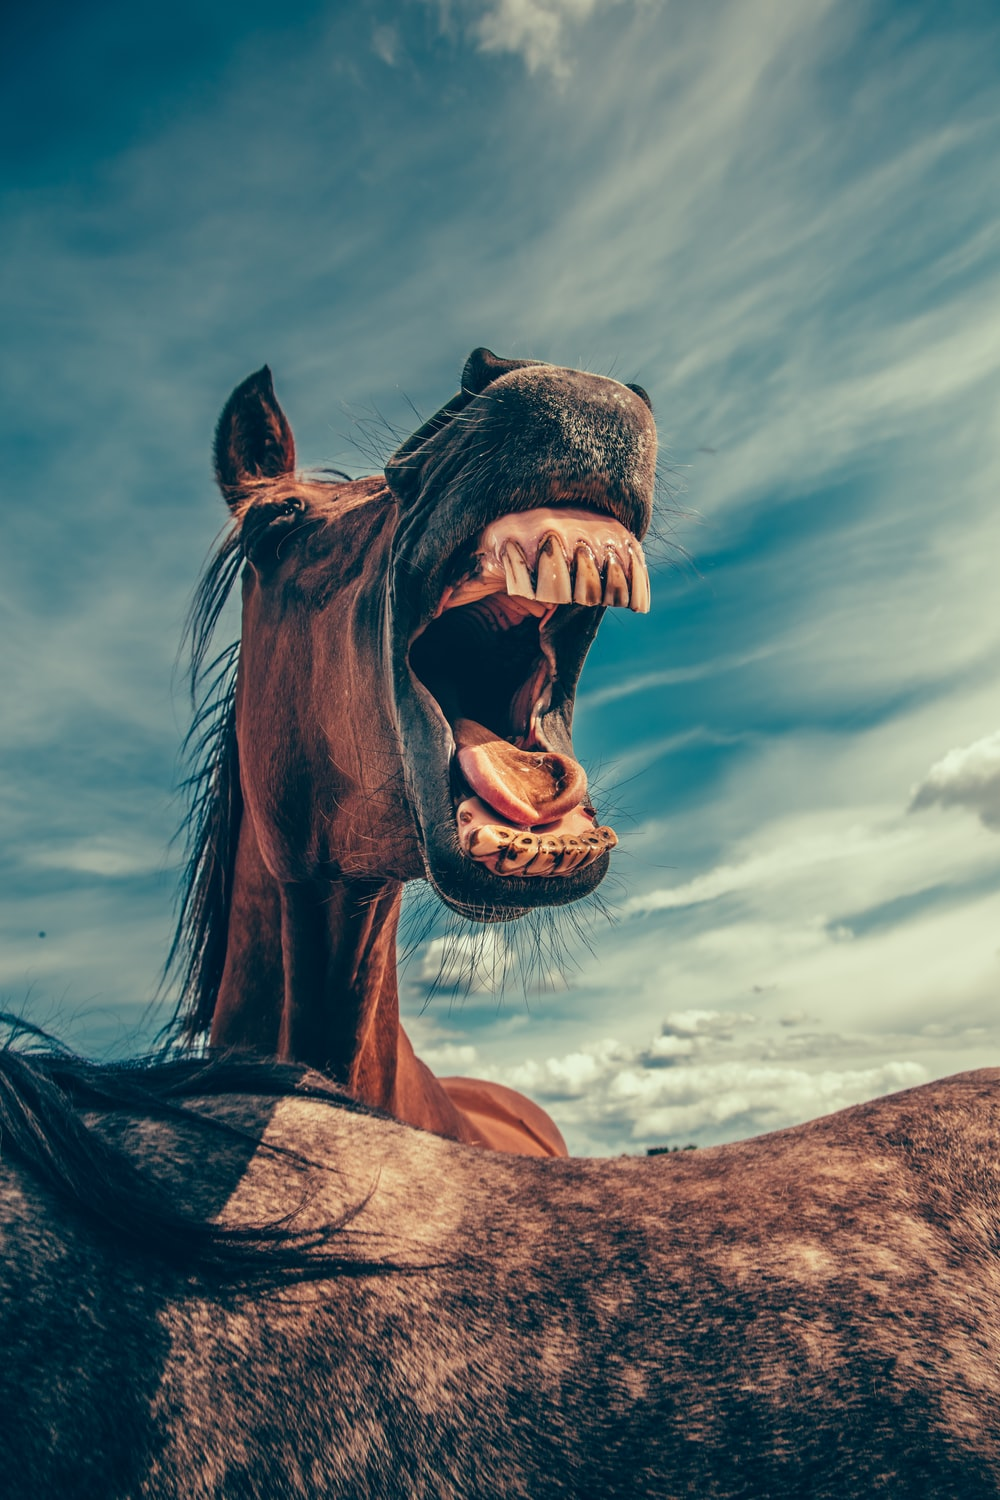 photo of shouting horse under cloudy sky